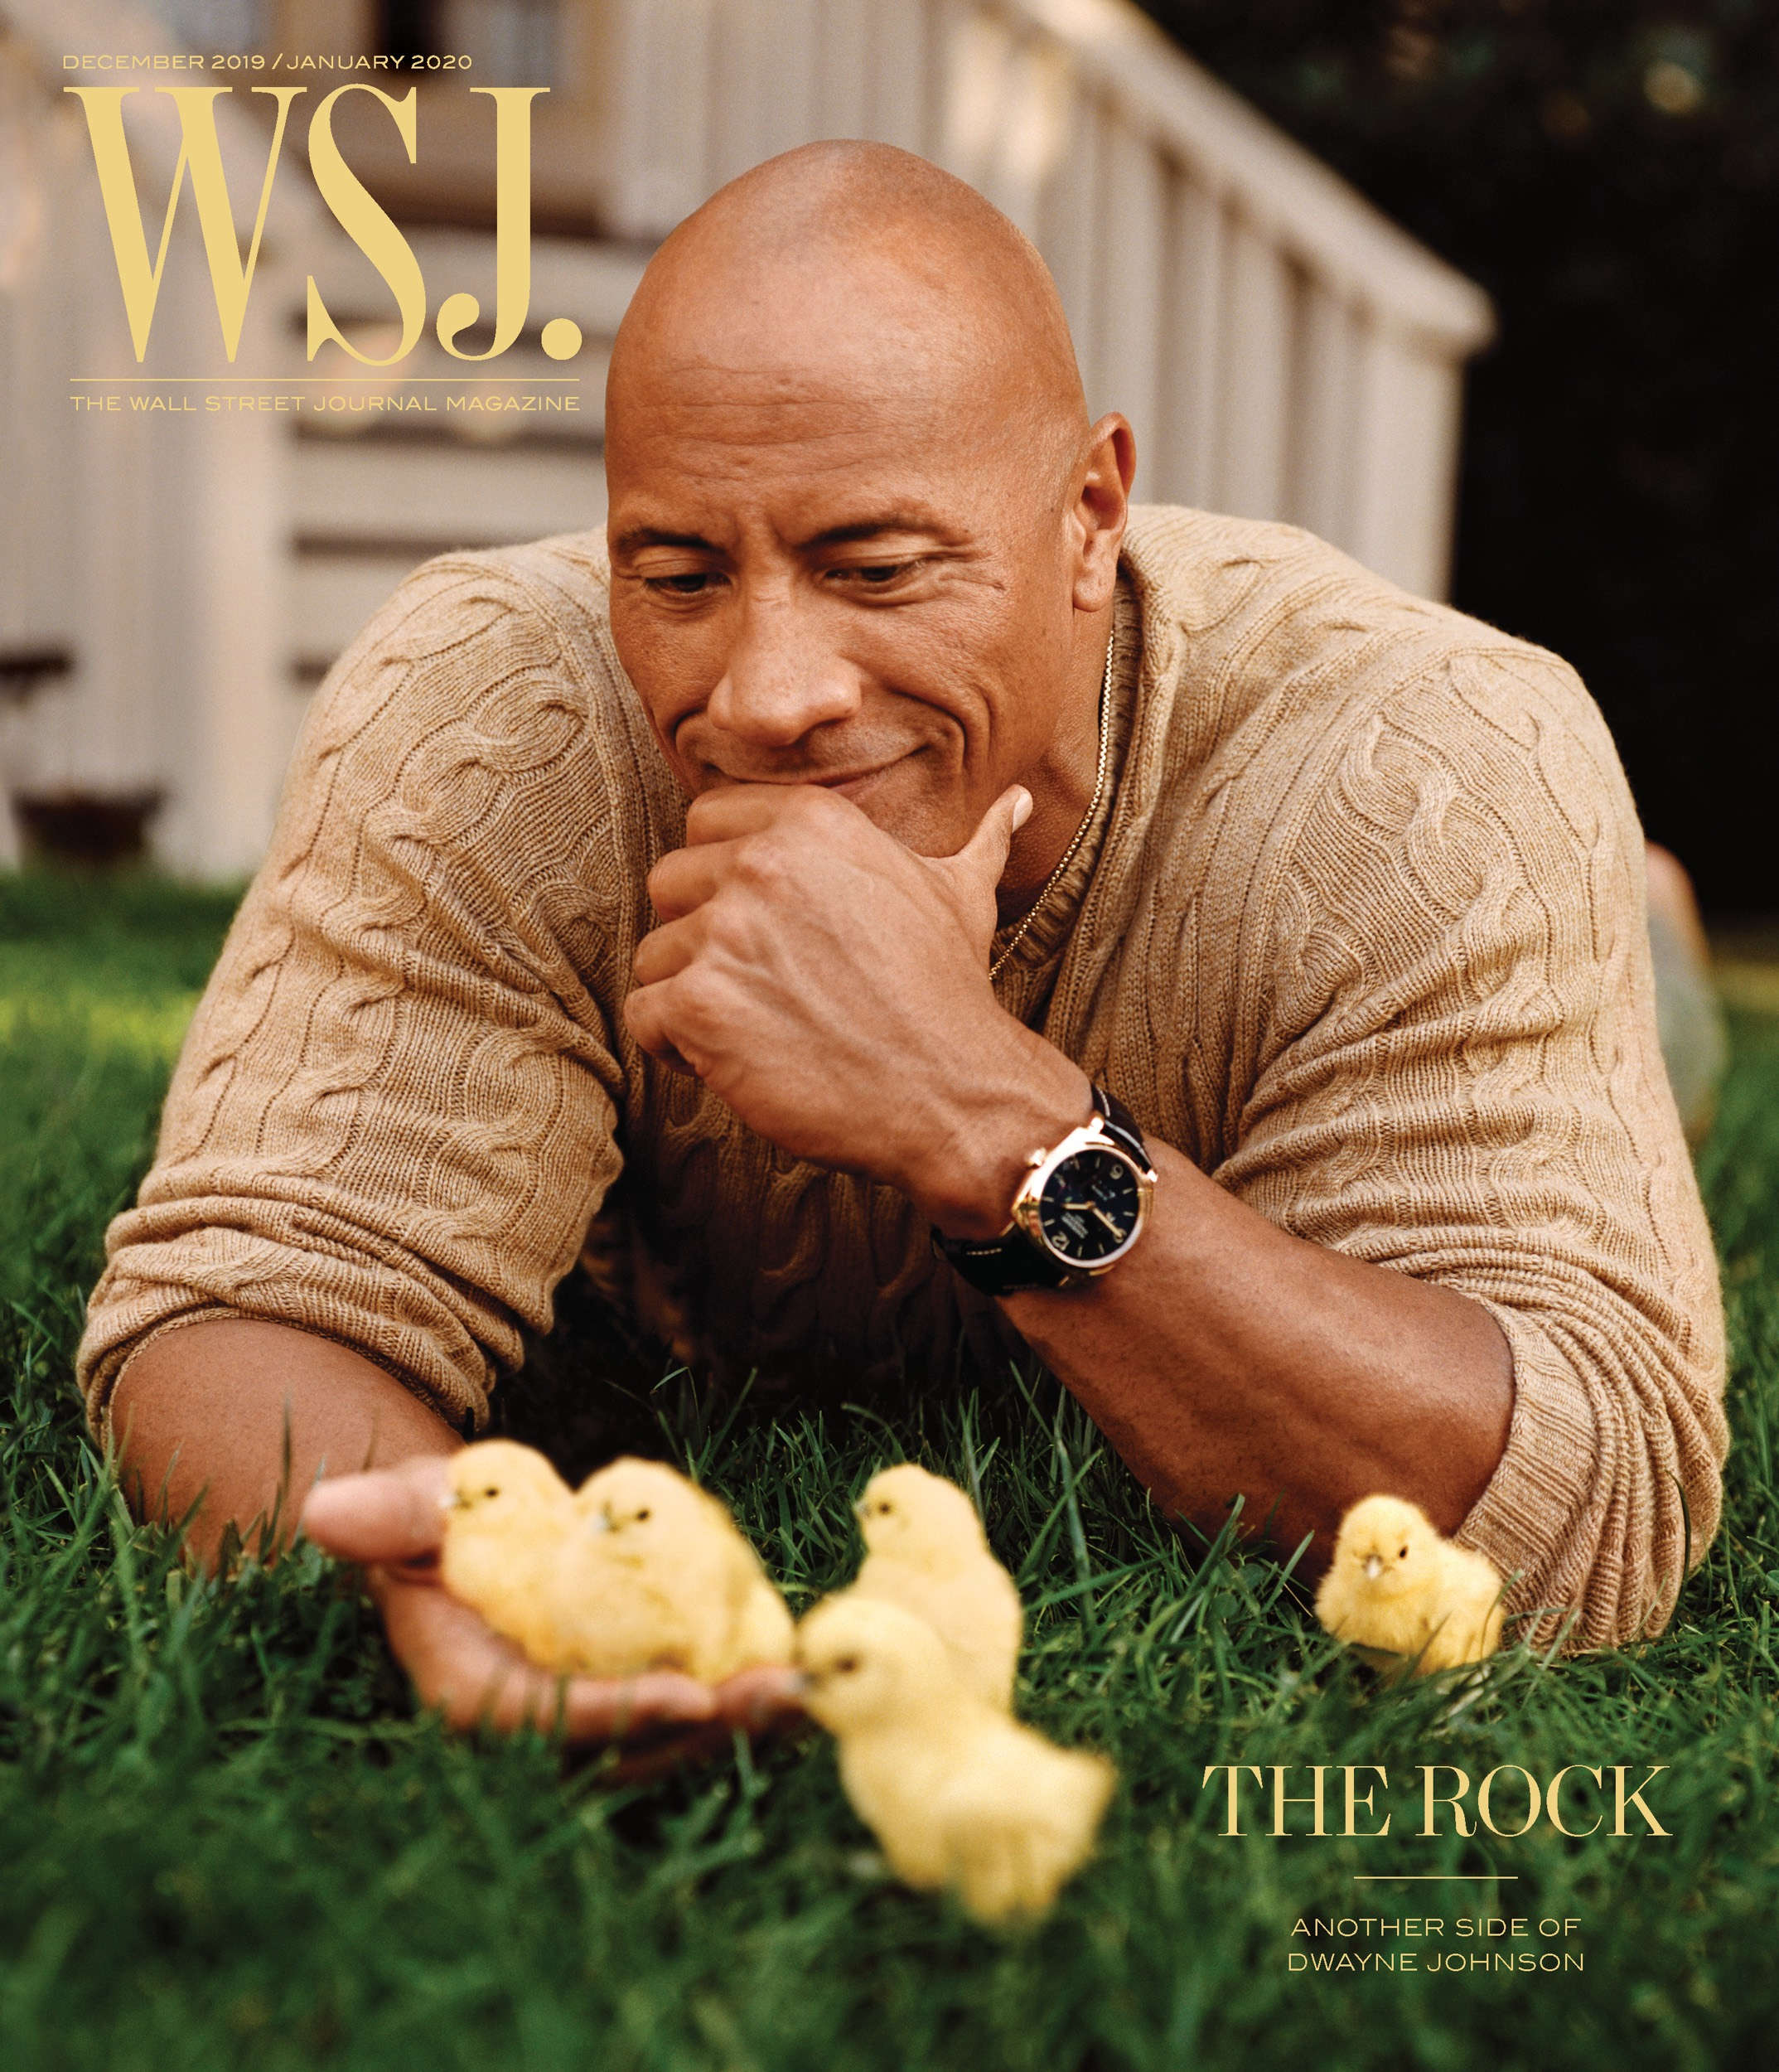 Dwayne Johnson Graces the Cover of Wall Street Journal Magazine